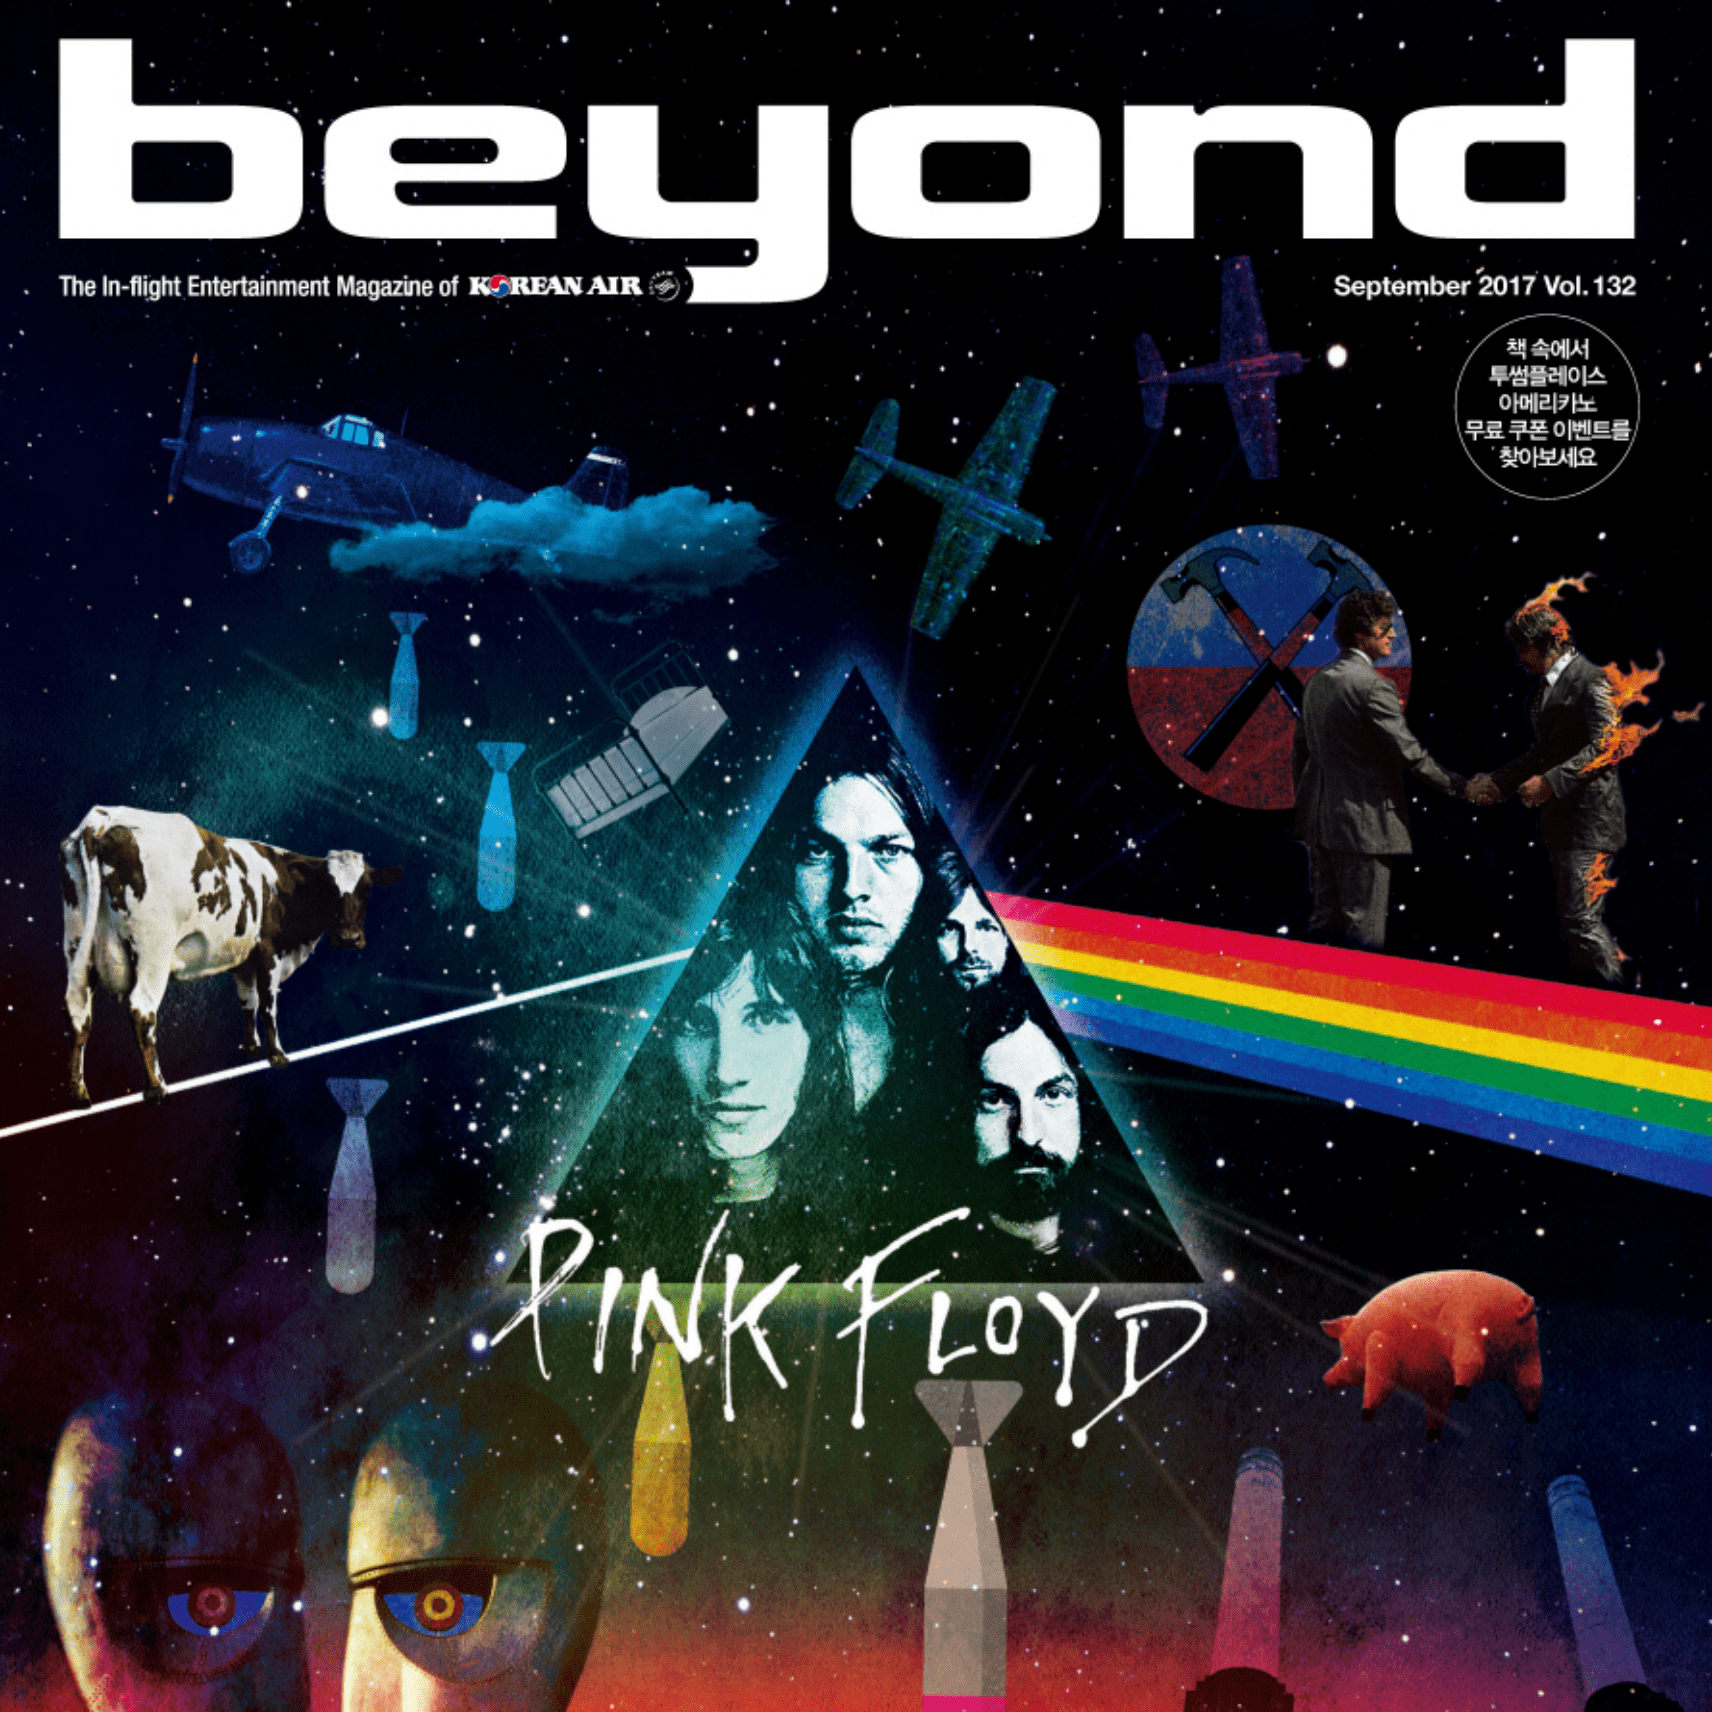 Beyond Vol. 132 - September 2017 - 116 pages